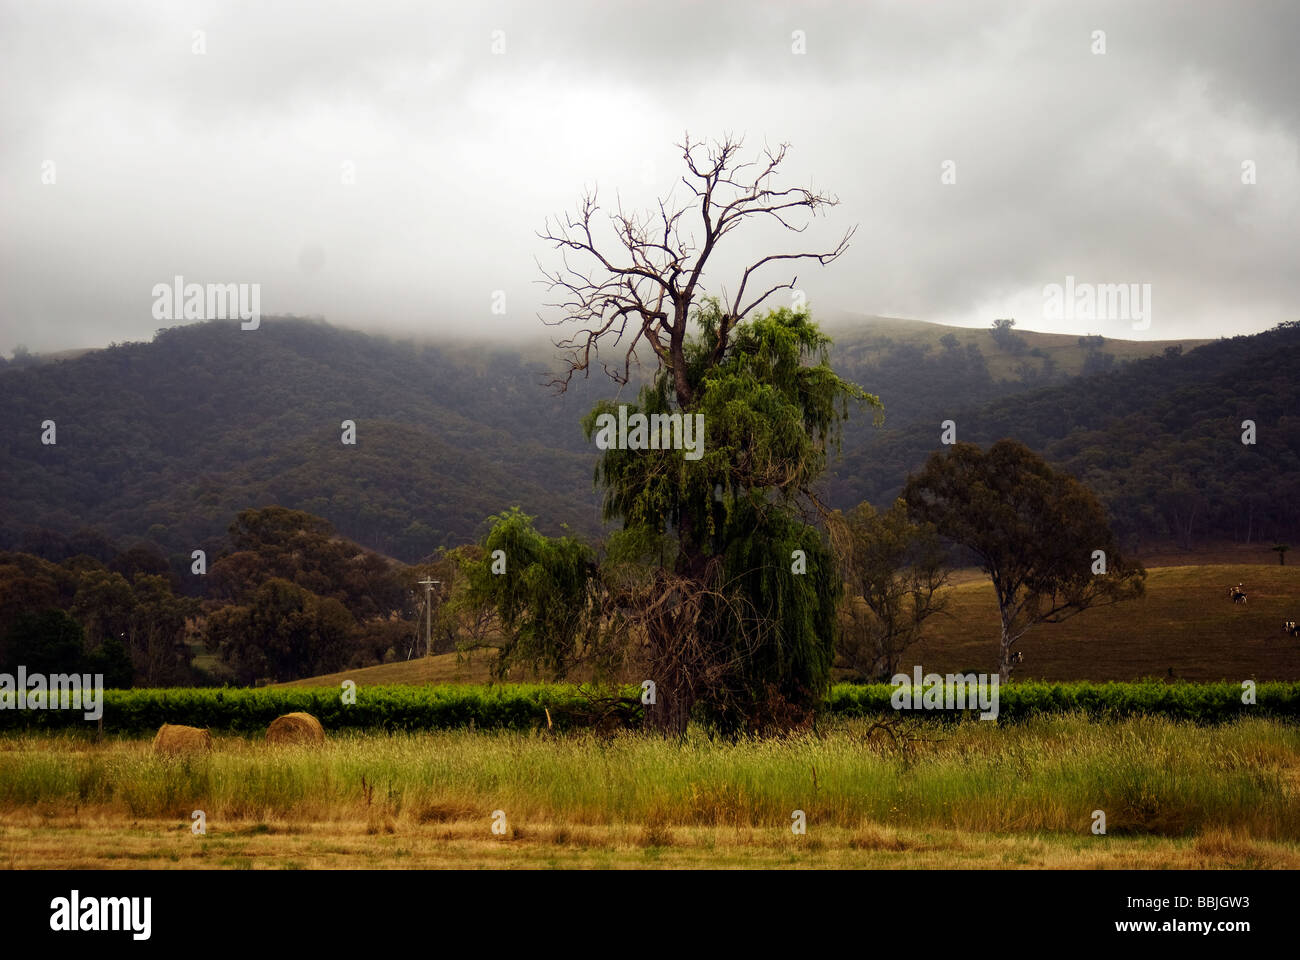 Clearing mist in King Valley - Stock Image